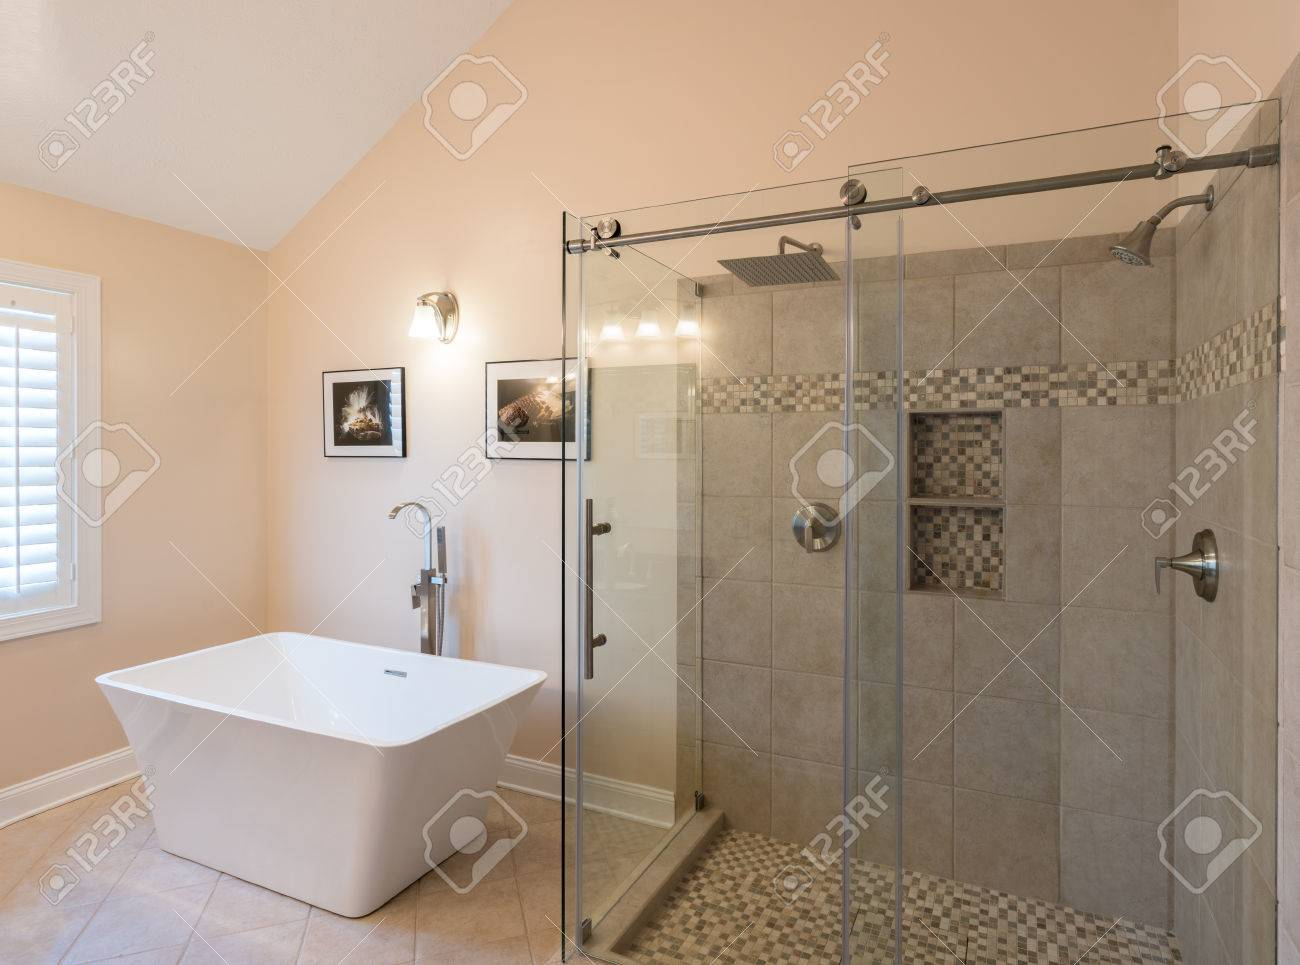 Interior Of Modern Bathroom With Standalone Tub Bath And Walk ...